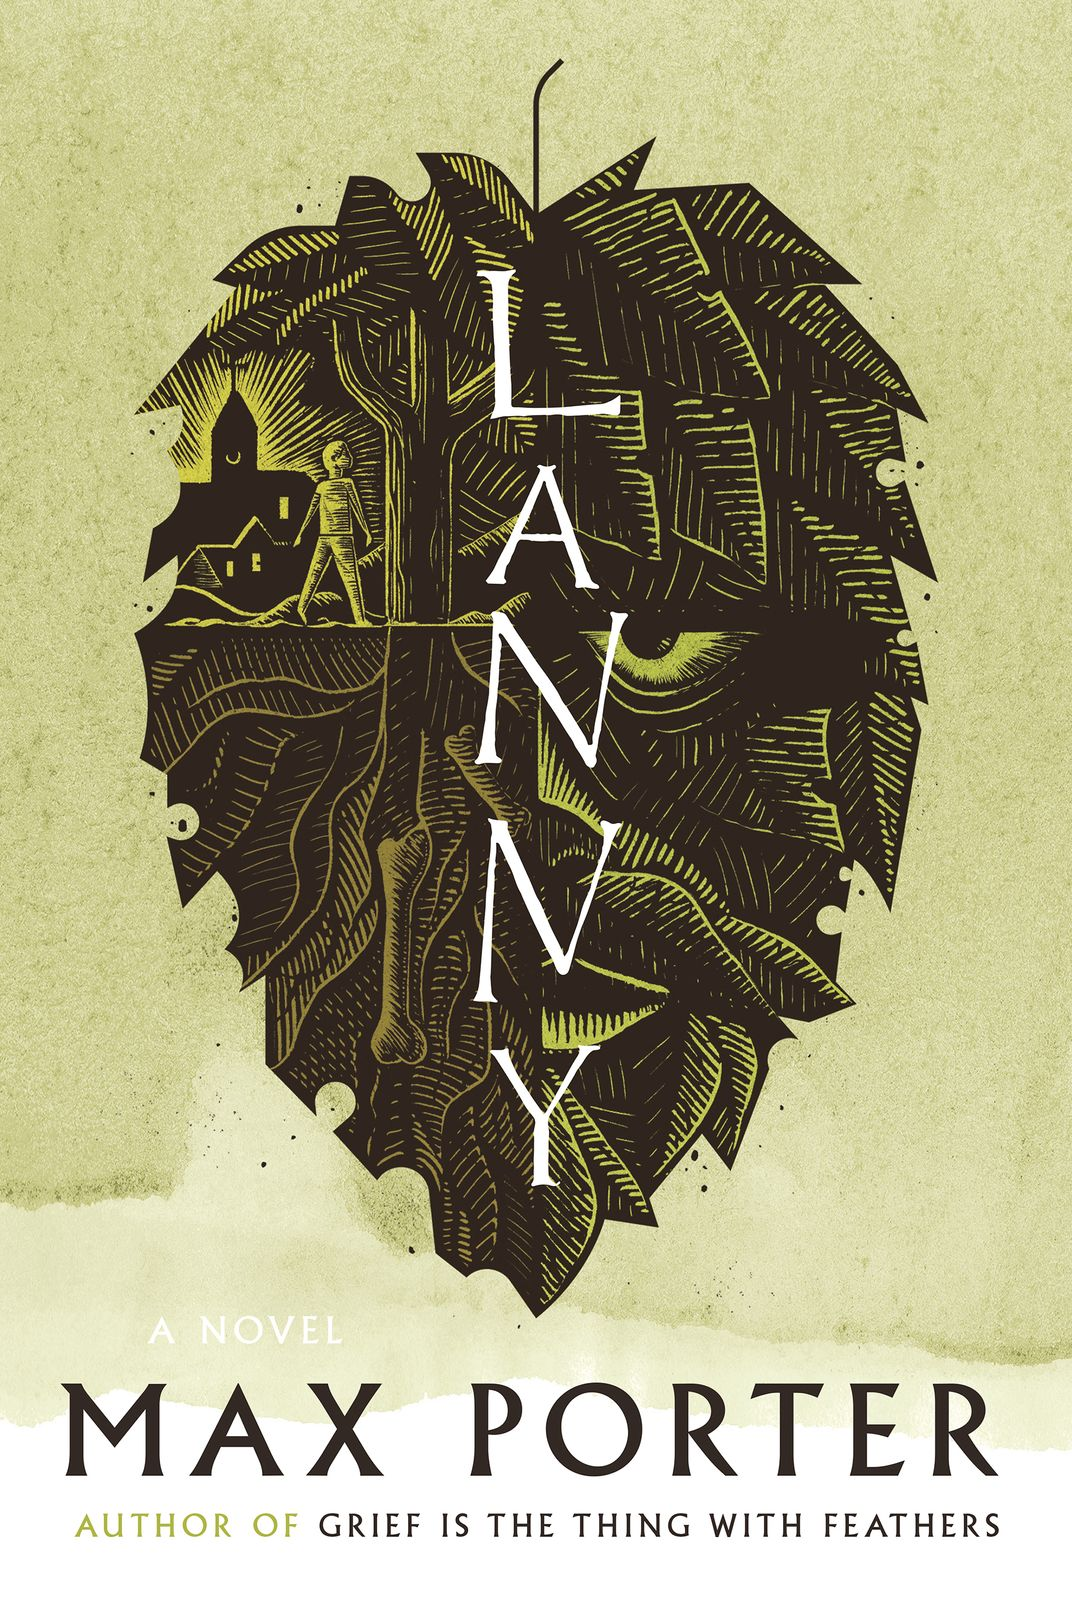 Lanny, by Max Porter (Graywolf, May 14)